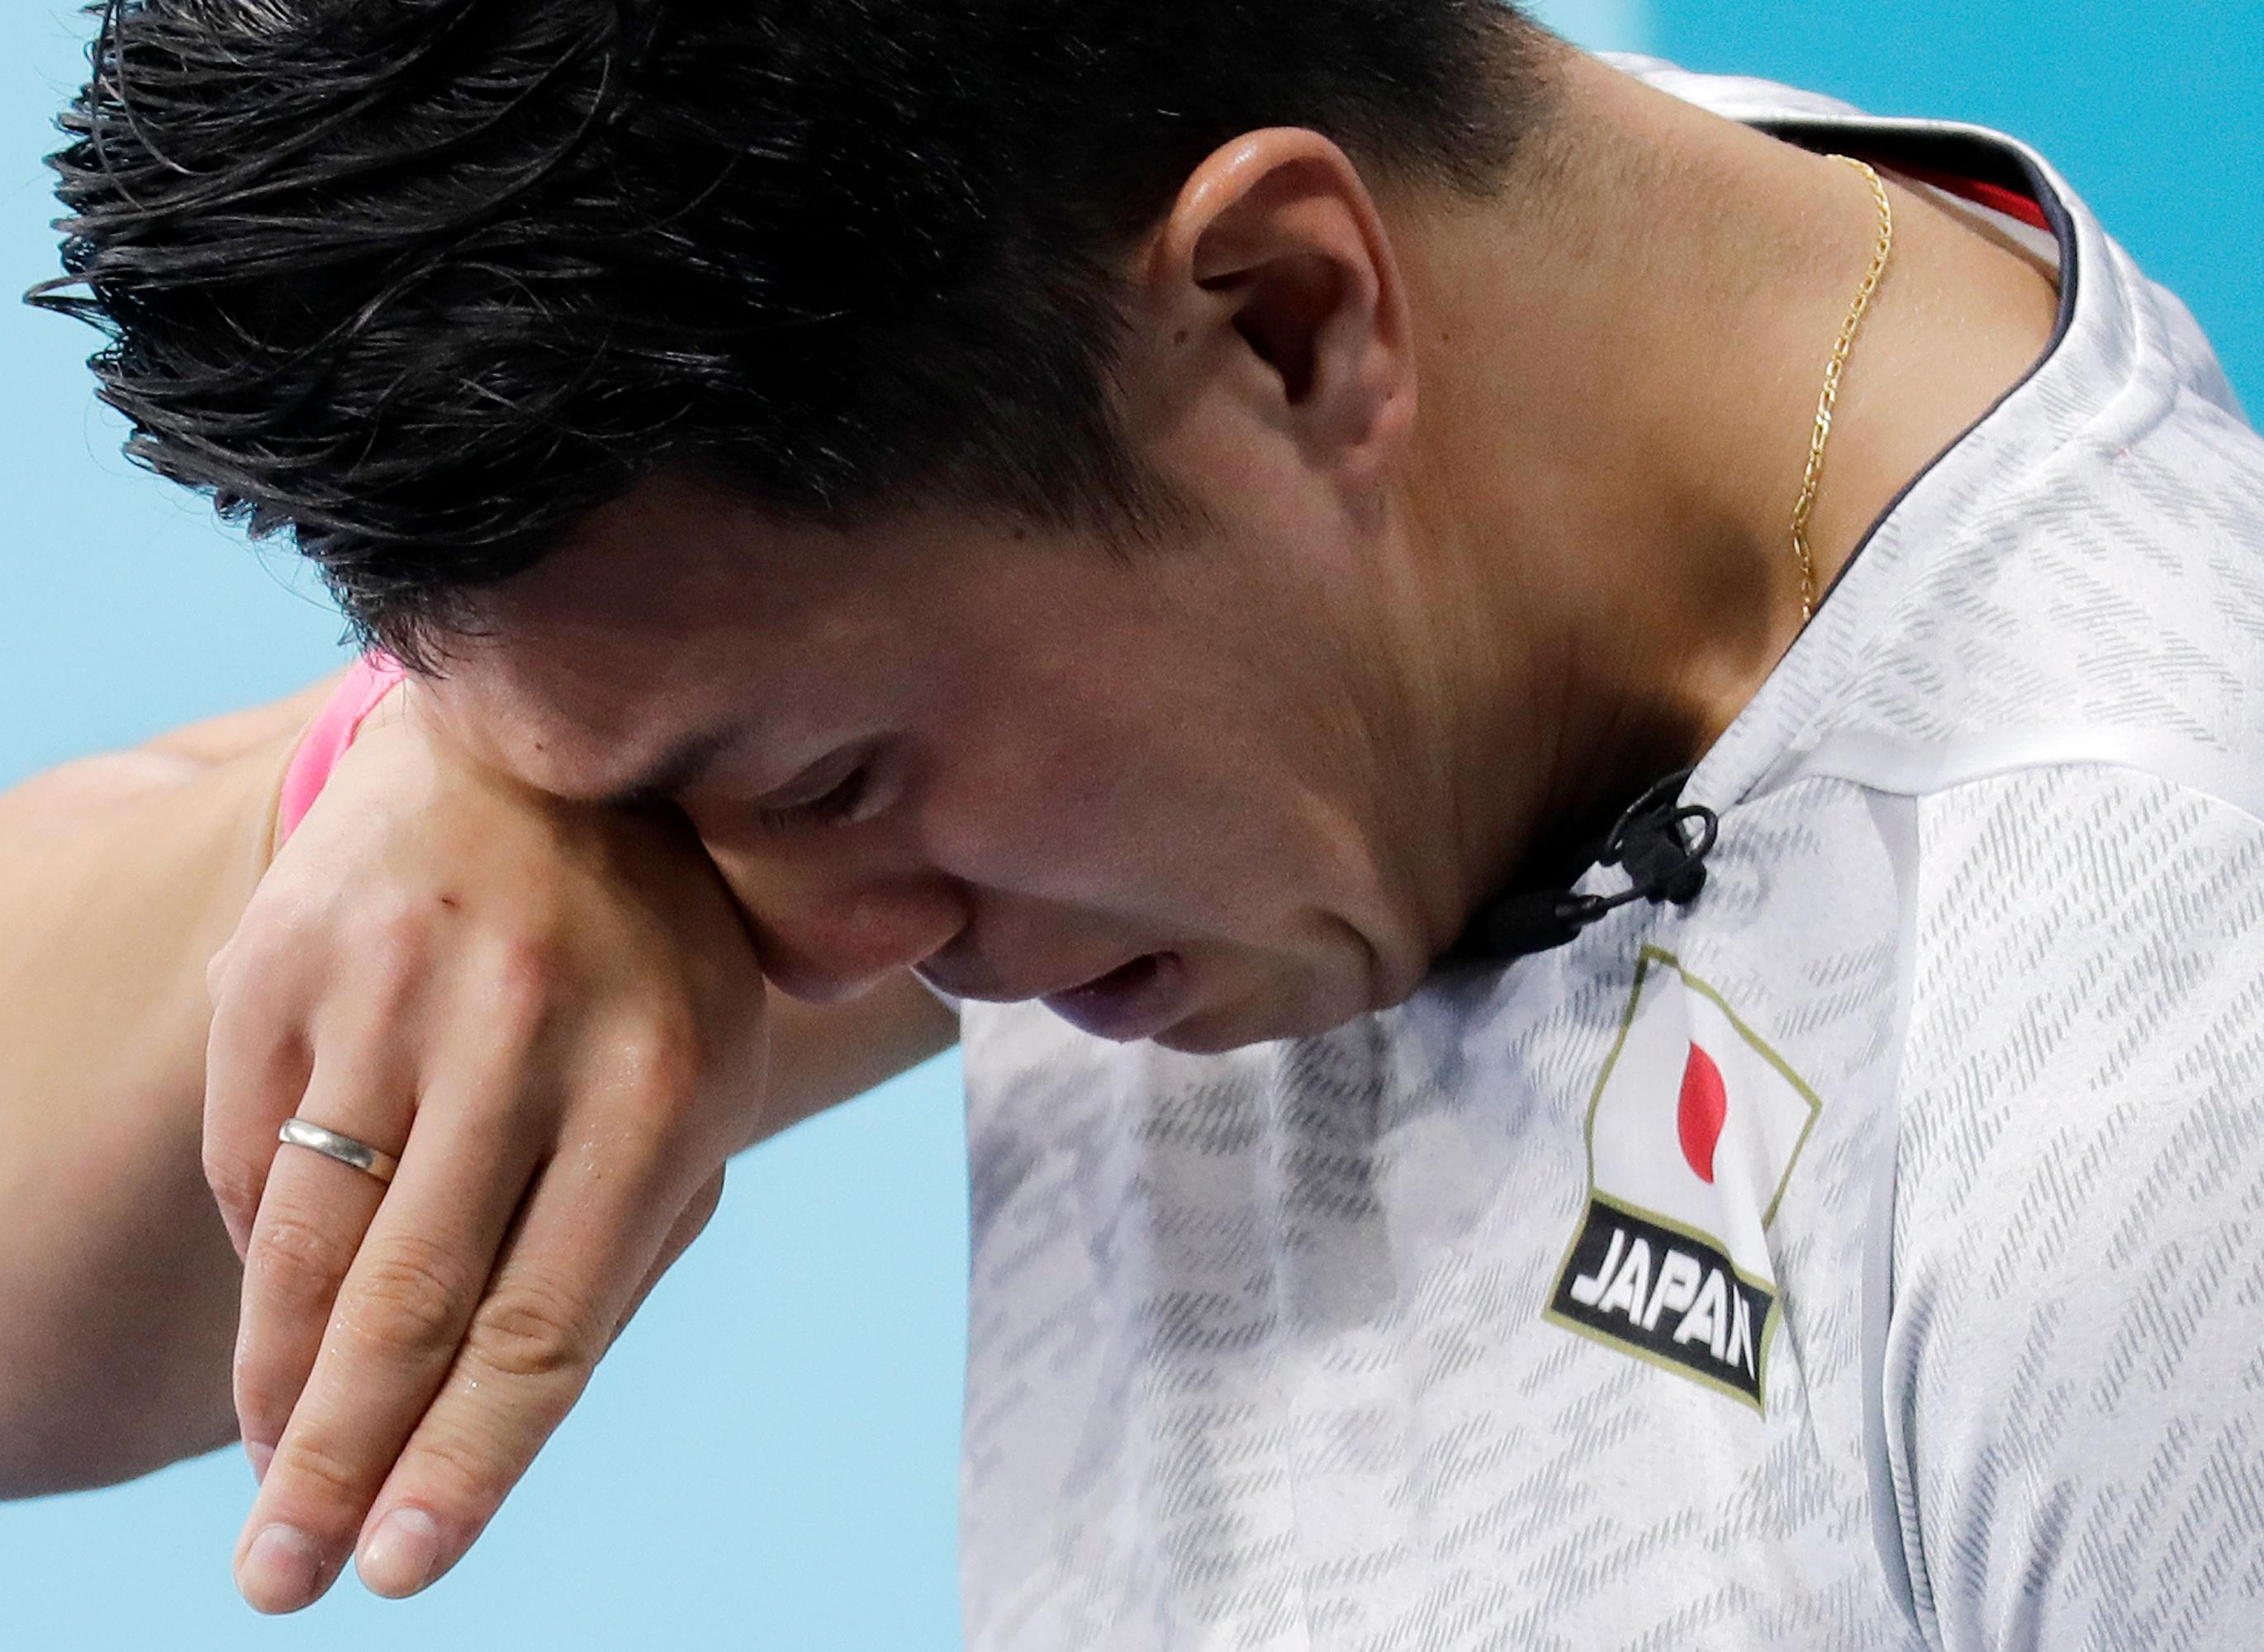 Japan's Tsuyoshi Yamaguchi cries after they lost their match against South Korea during the men's curling match at the 2018 Winter Olympics in Gangneung, South Korea, Wednesday, Feb. 21, 2018. (AP Photo/Aaron Favila)